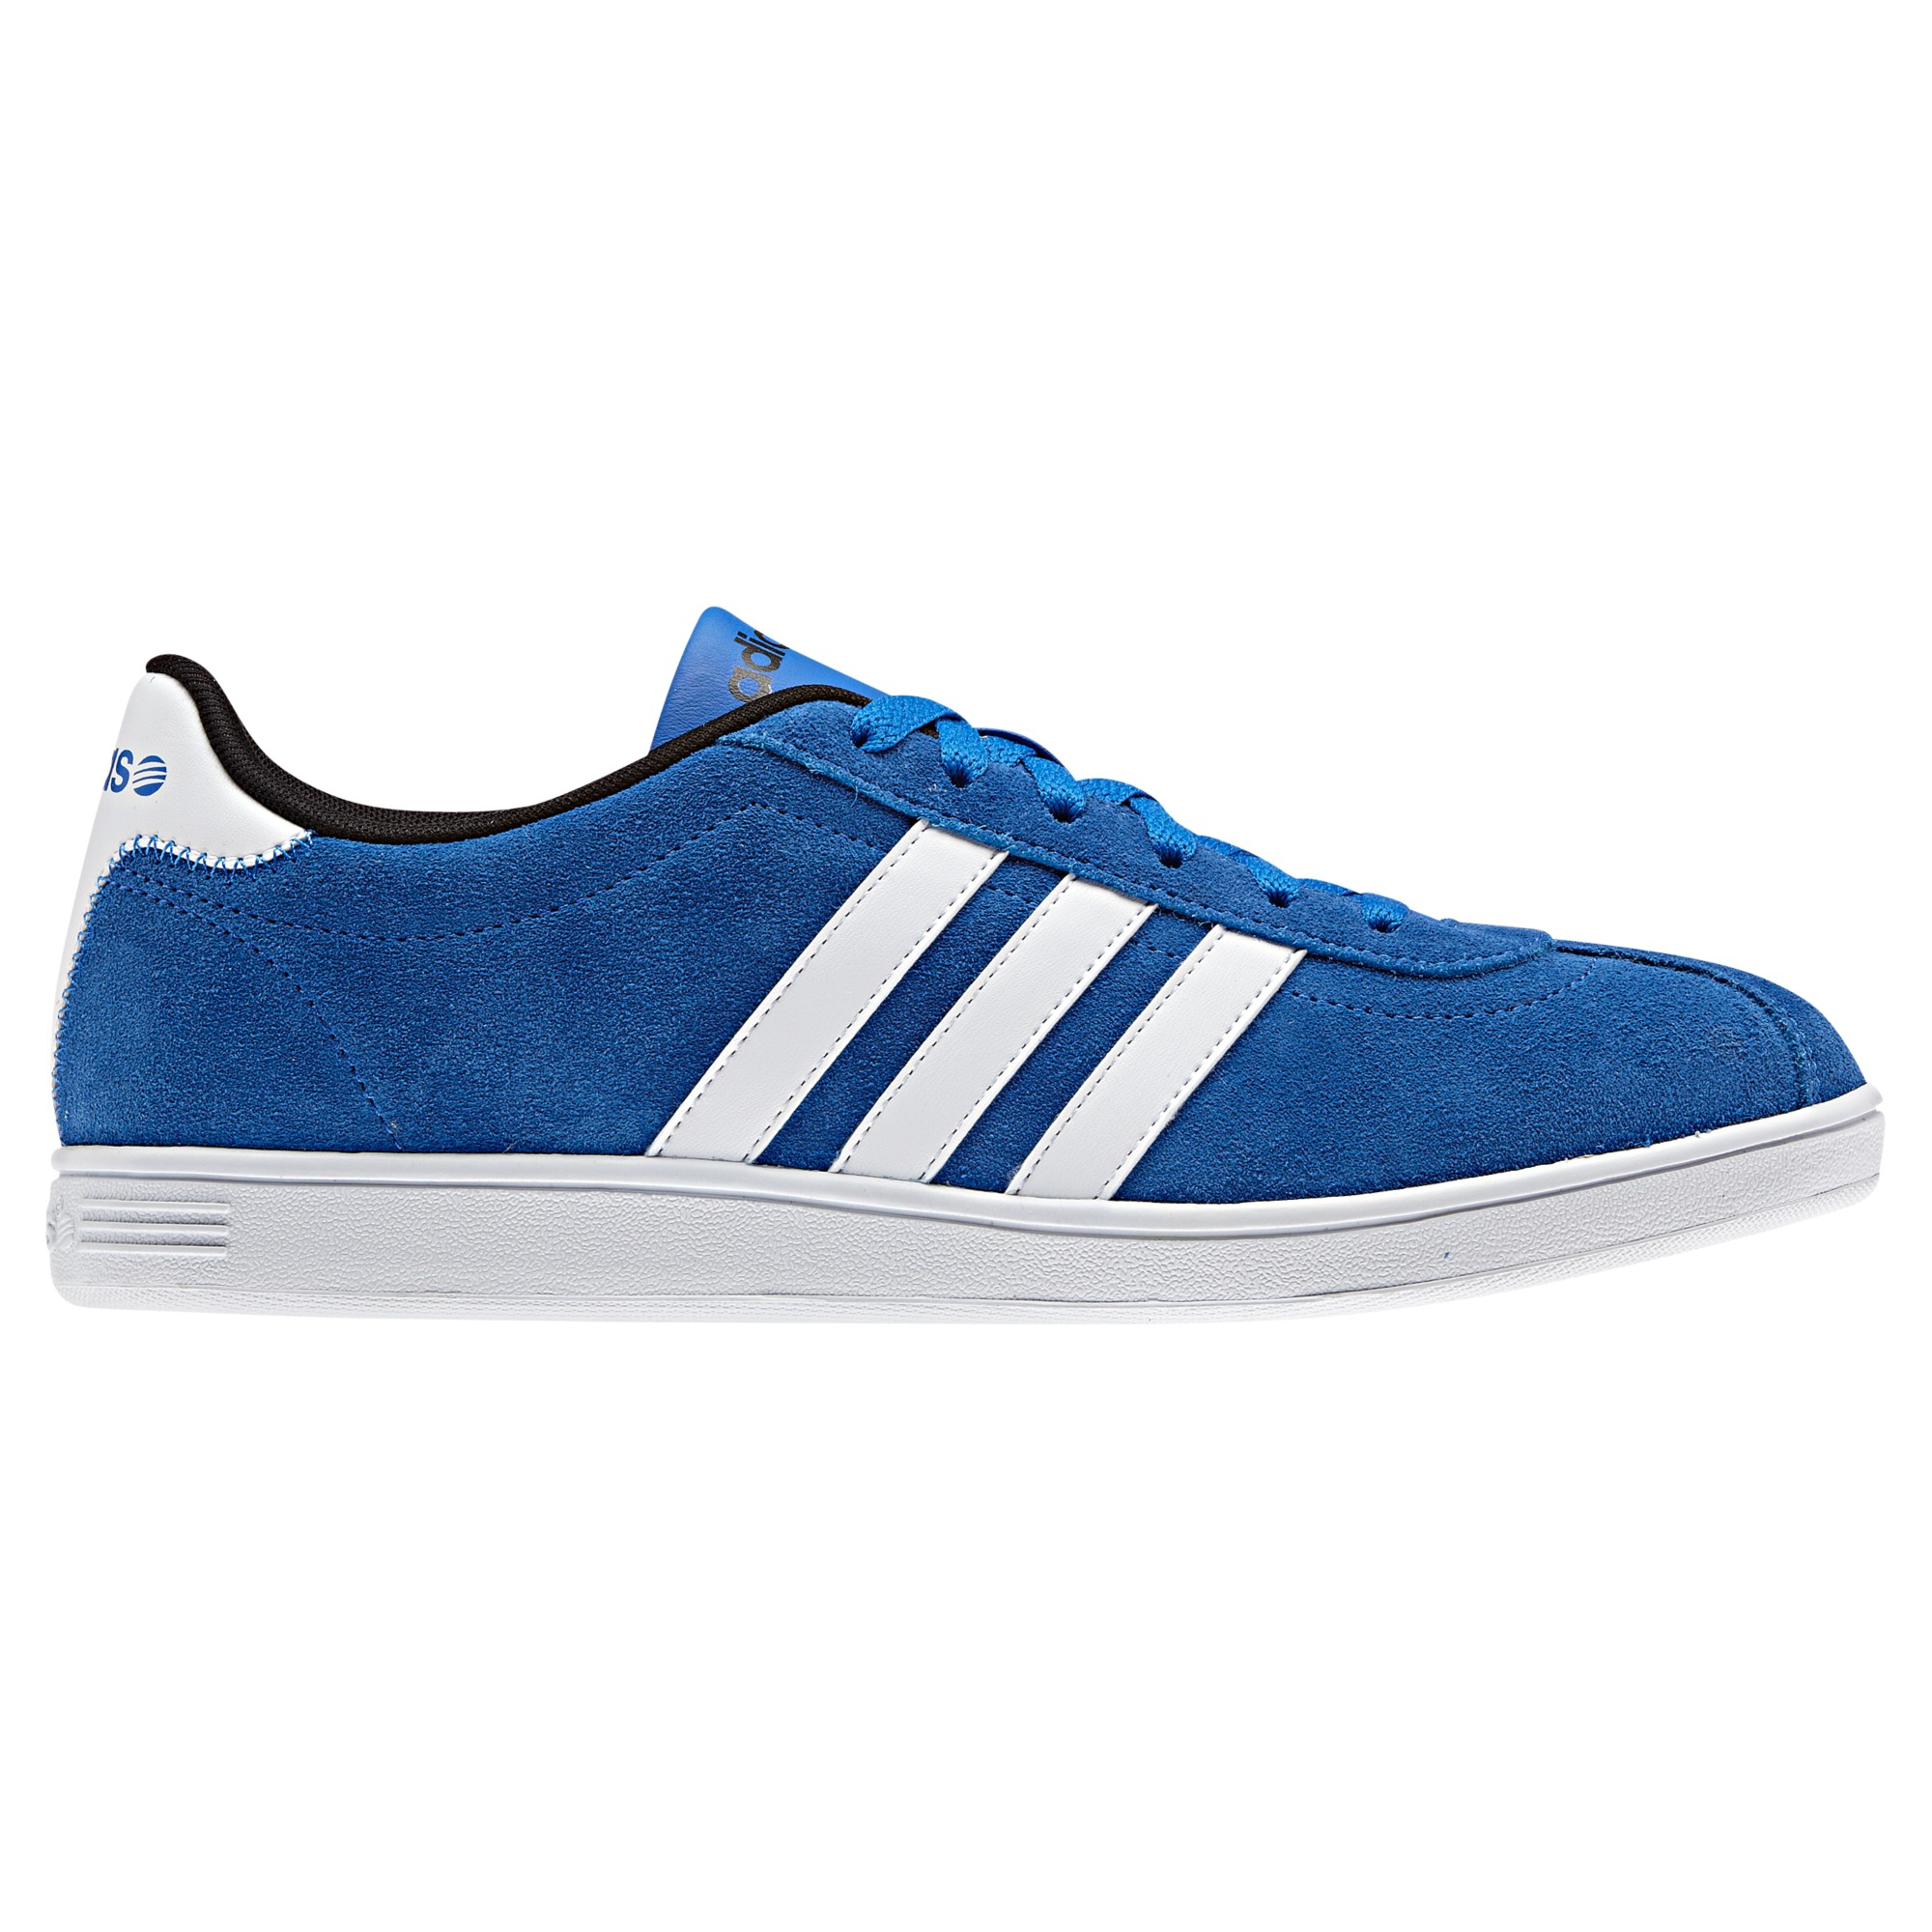 adidas Vlneo Suede Court Trainers in Blue/White (Blue) for Men